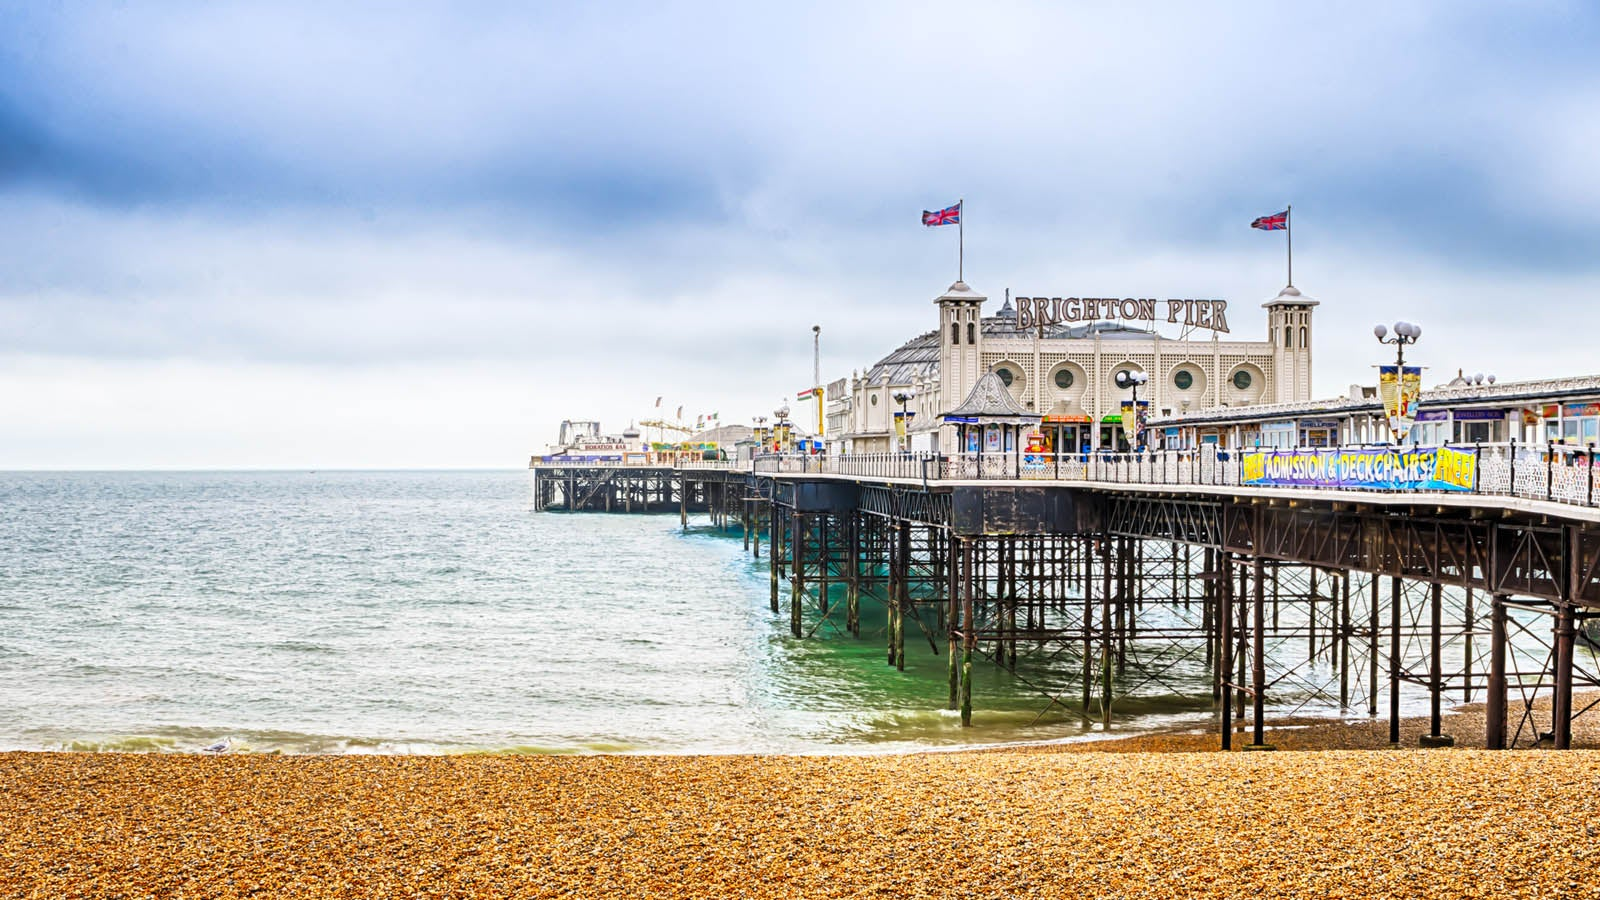 A photograph of Brighton Pier taken from the beach.